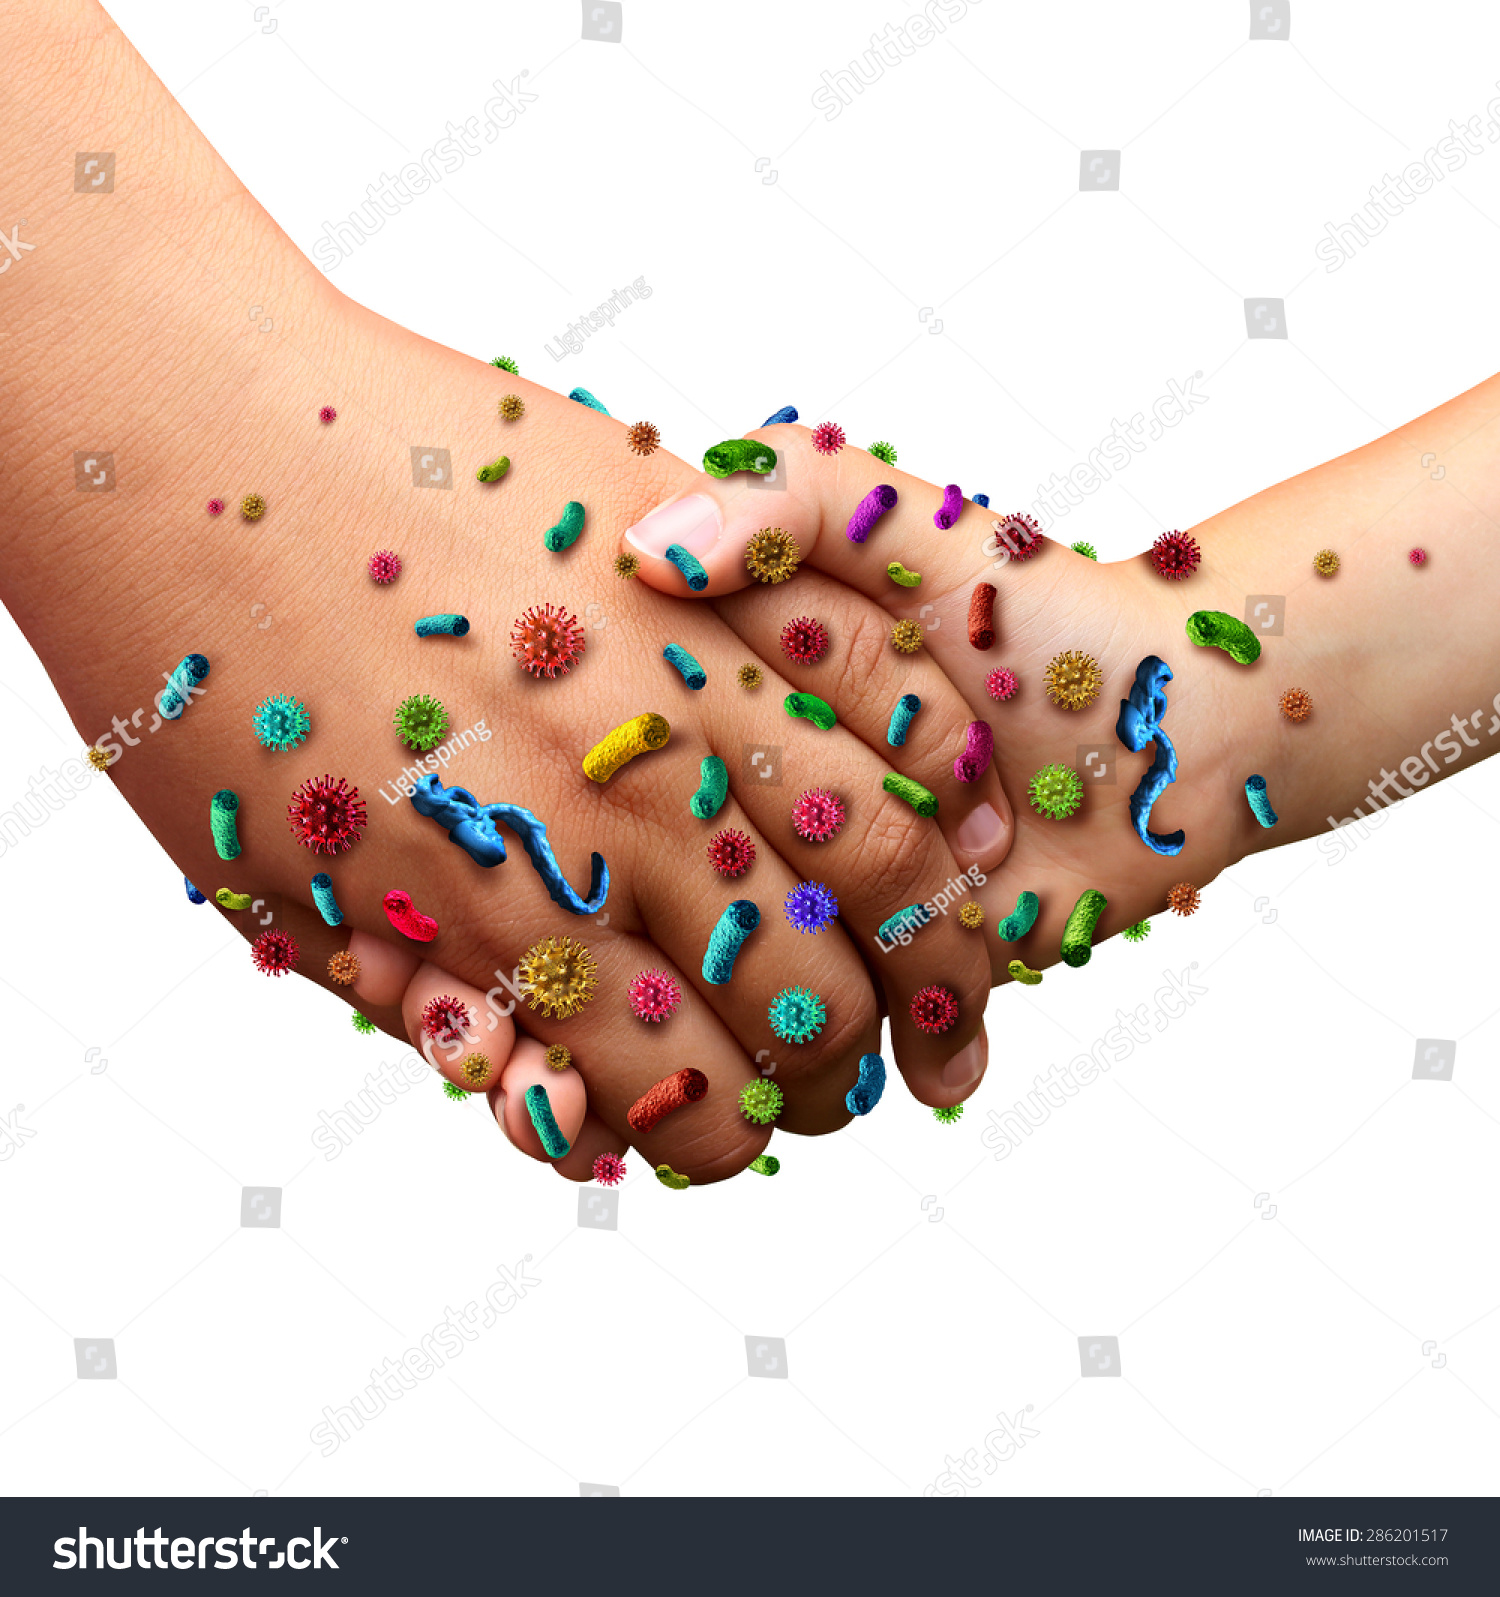 pathogens and the spread of disease essay Preventing the spread of infectious diseases decrease your risk of infecting yourself or others: wash your hands often this is especially important before and after preparing food, before eating and after using the toilet.